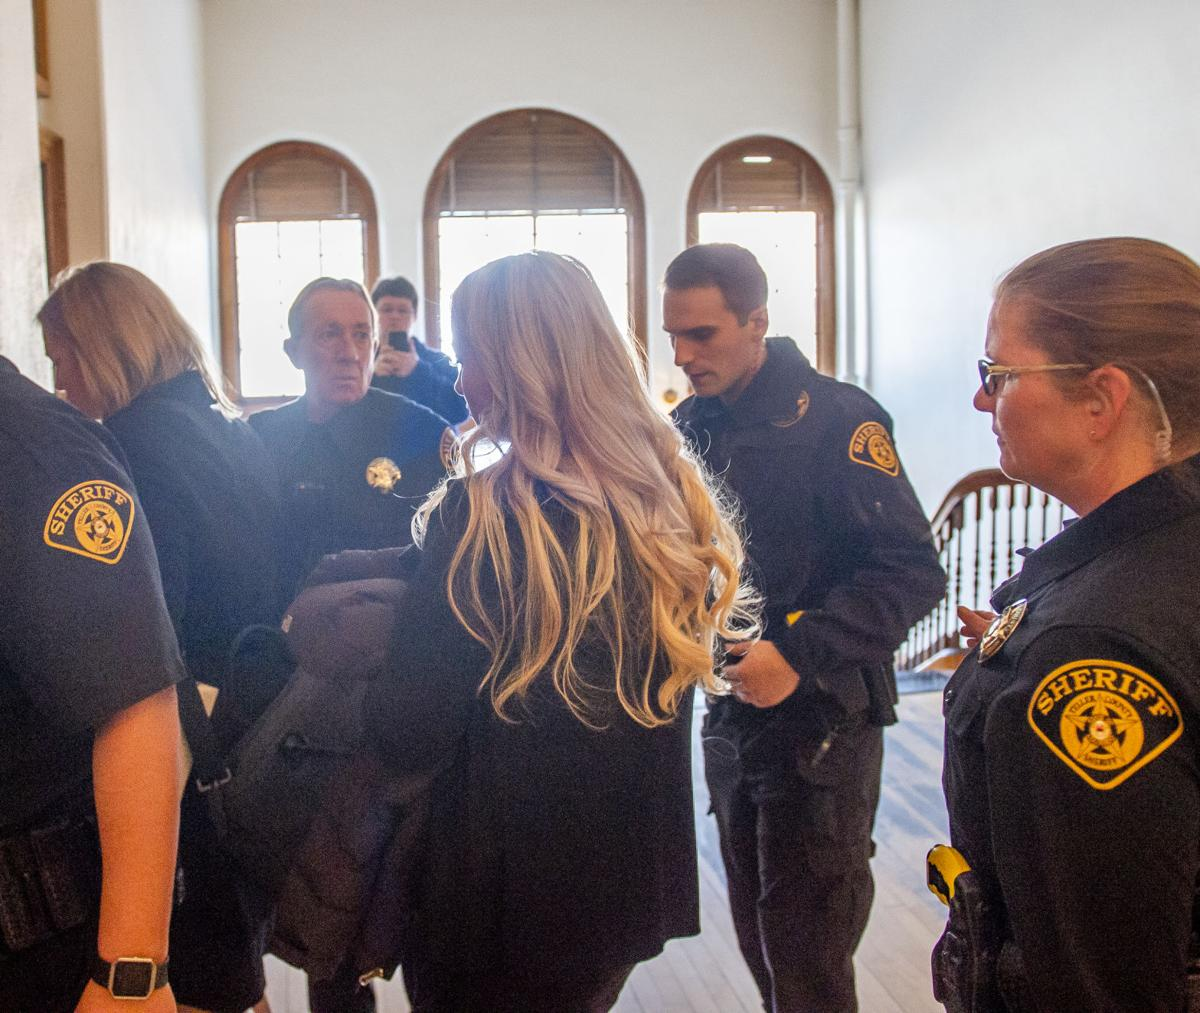 (COURIER) Krystal Jean Lee Kenney exits the courtroom